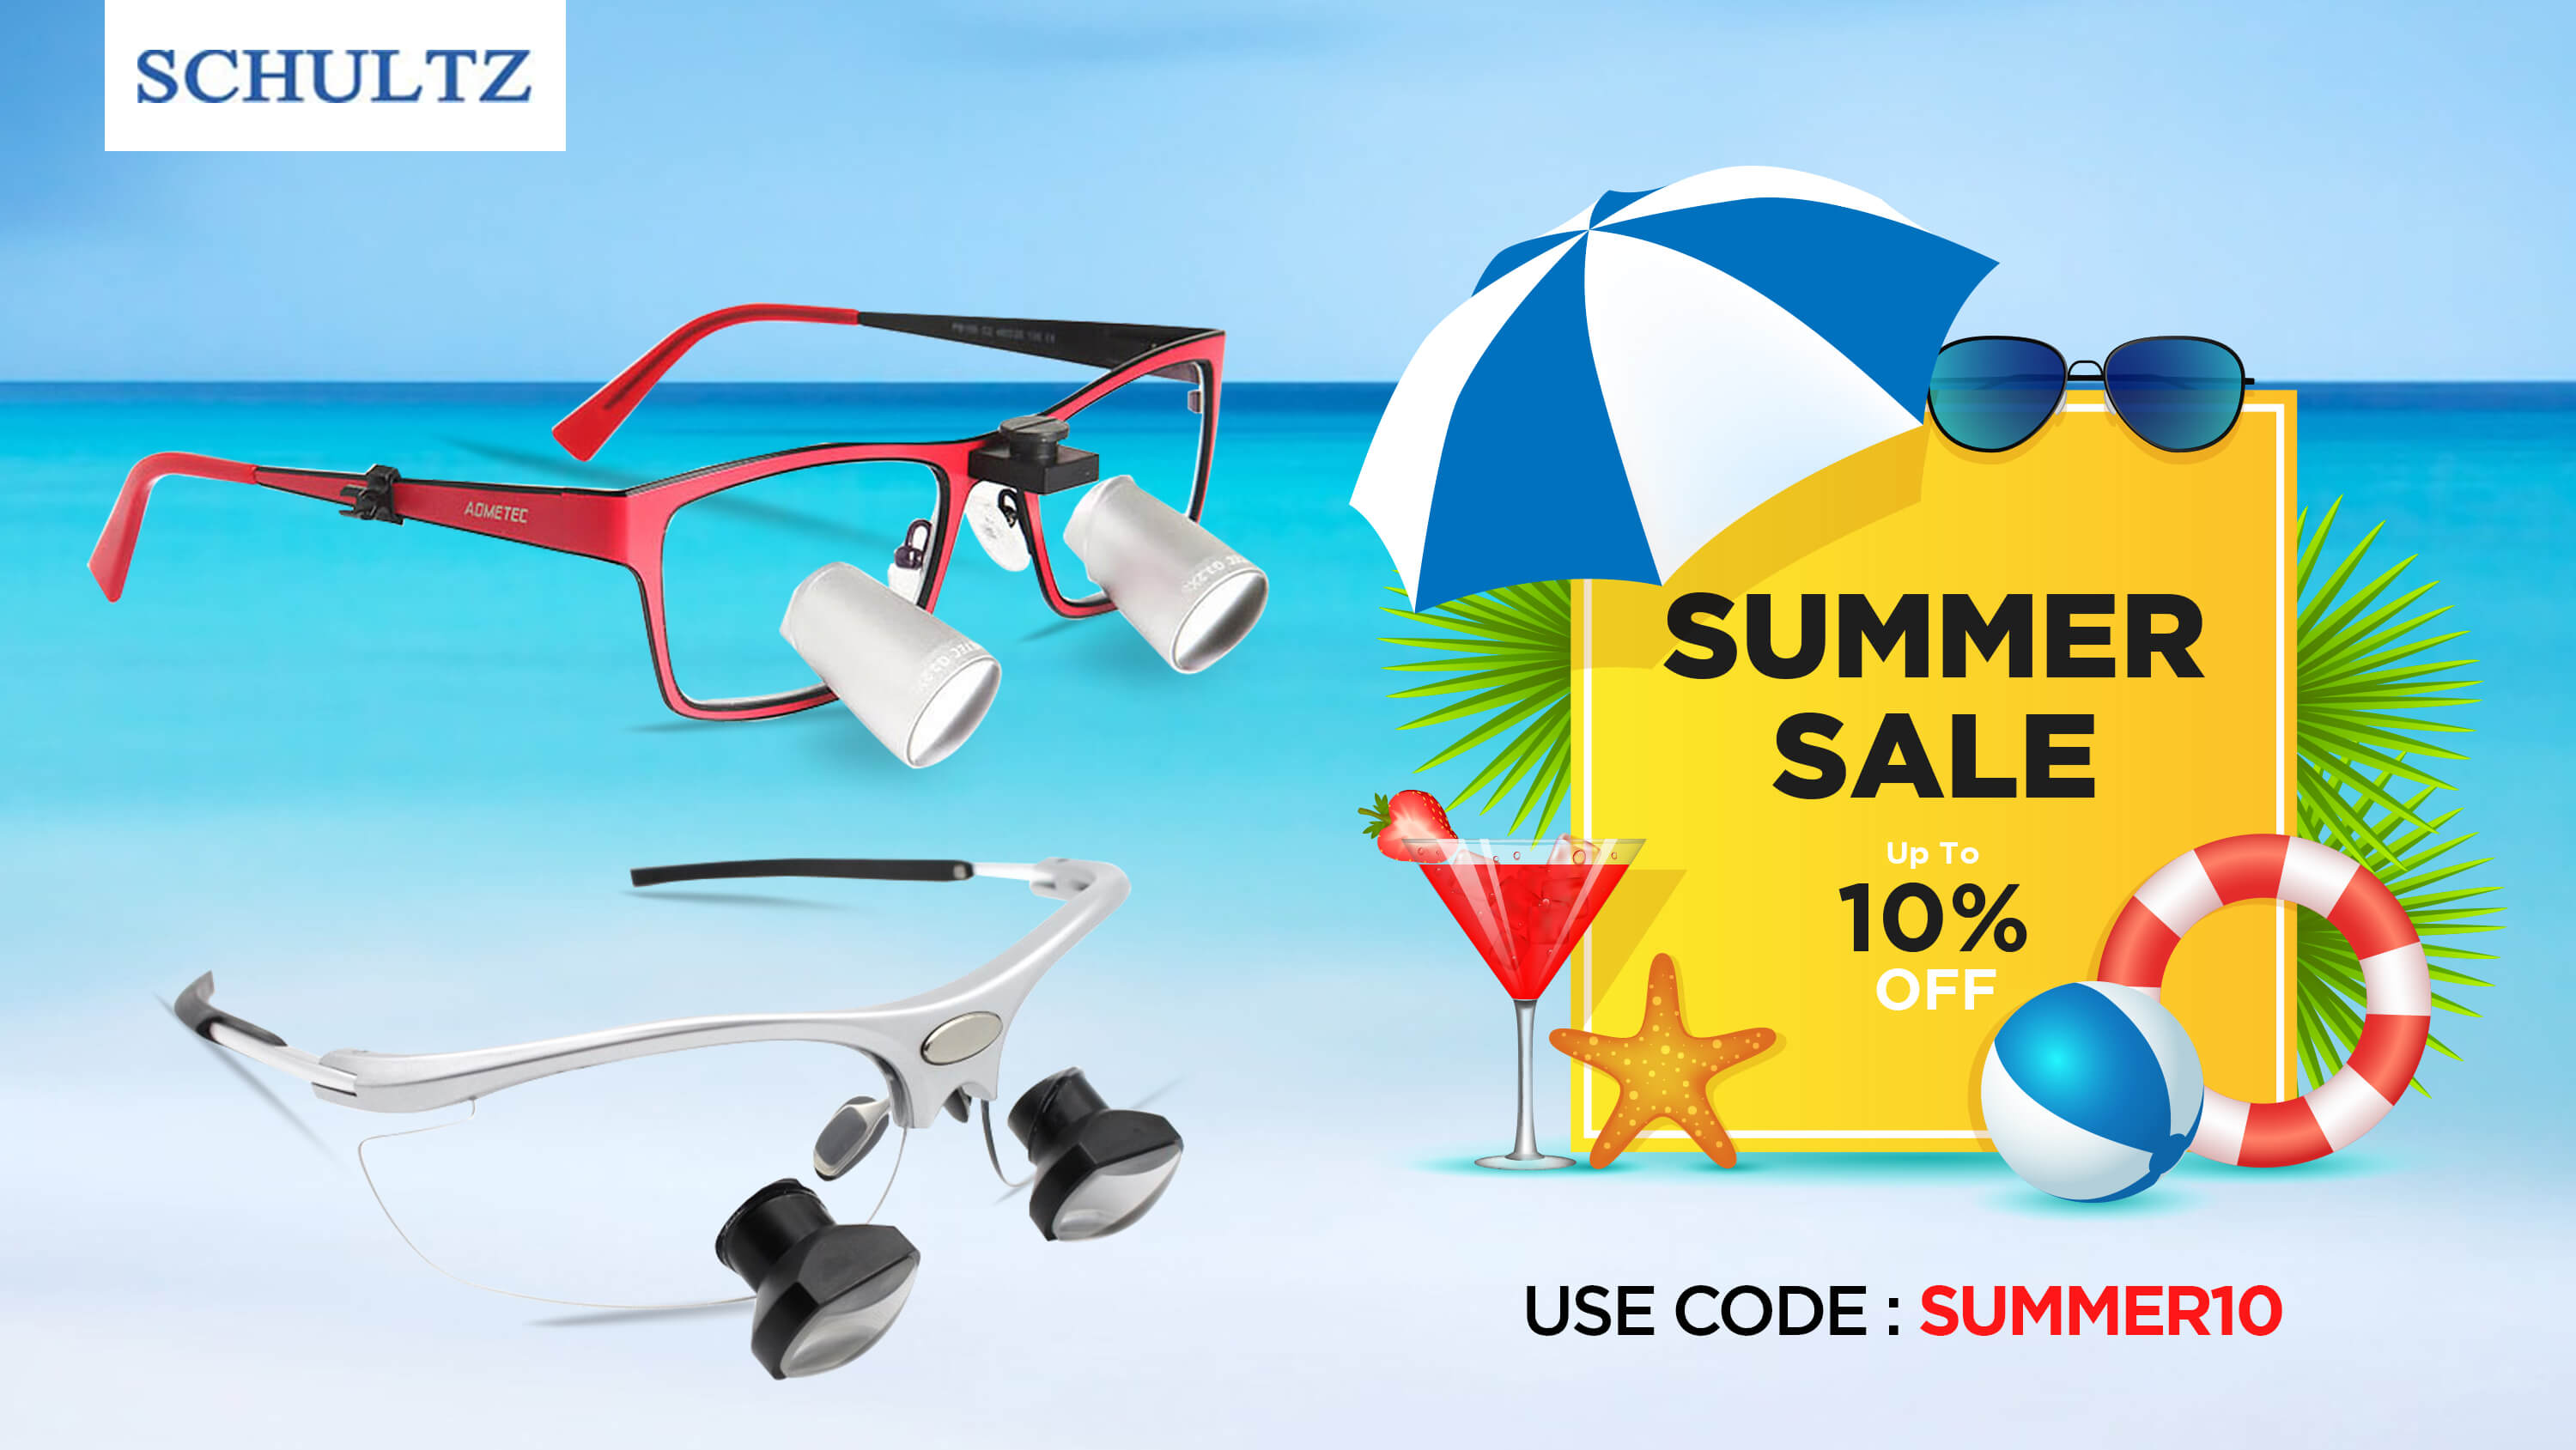 Catch Our Summer Sales And Save As Much As 10%